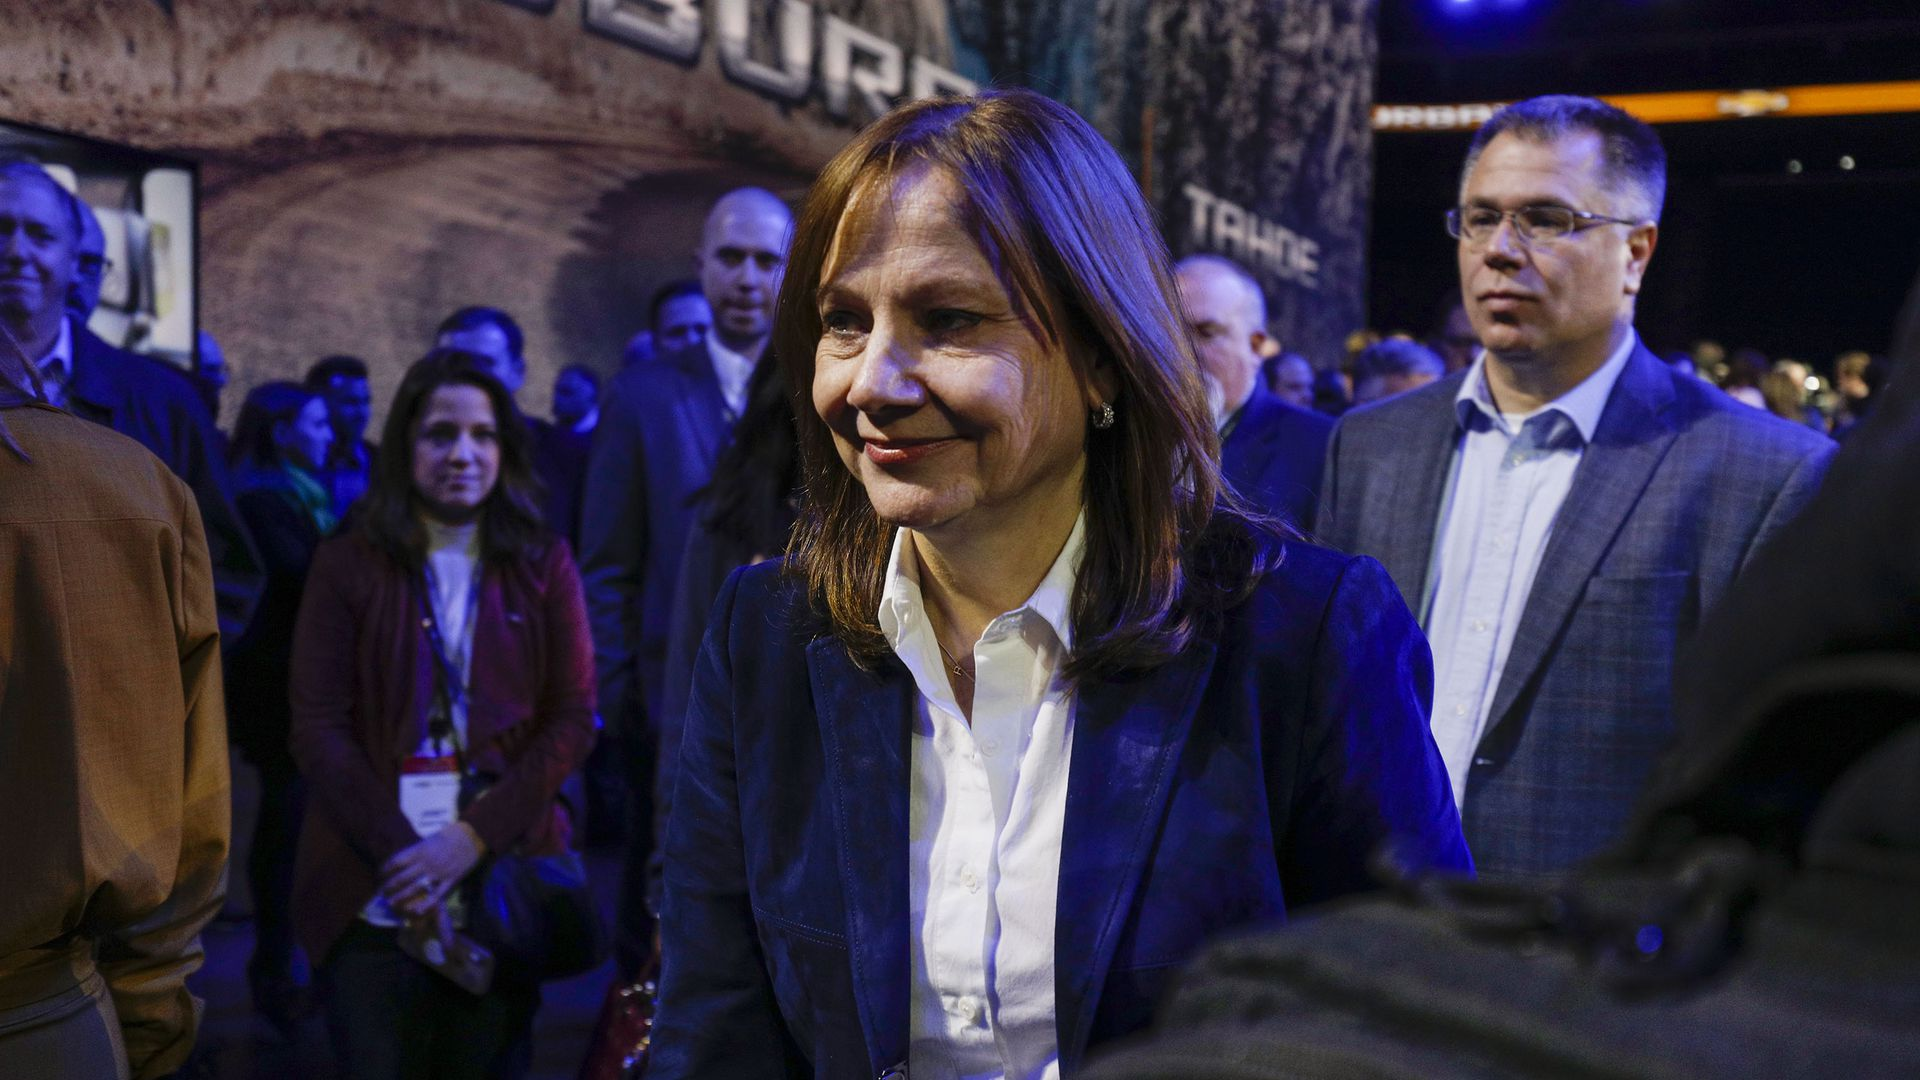 GM to invest $2.2 billion to revamp Detroit plant for electric vehicle production